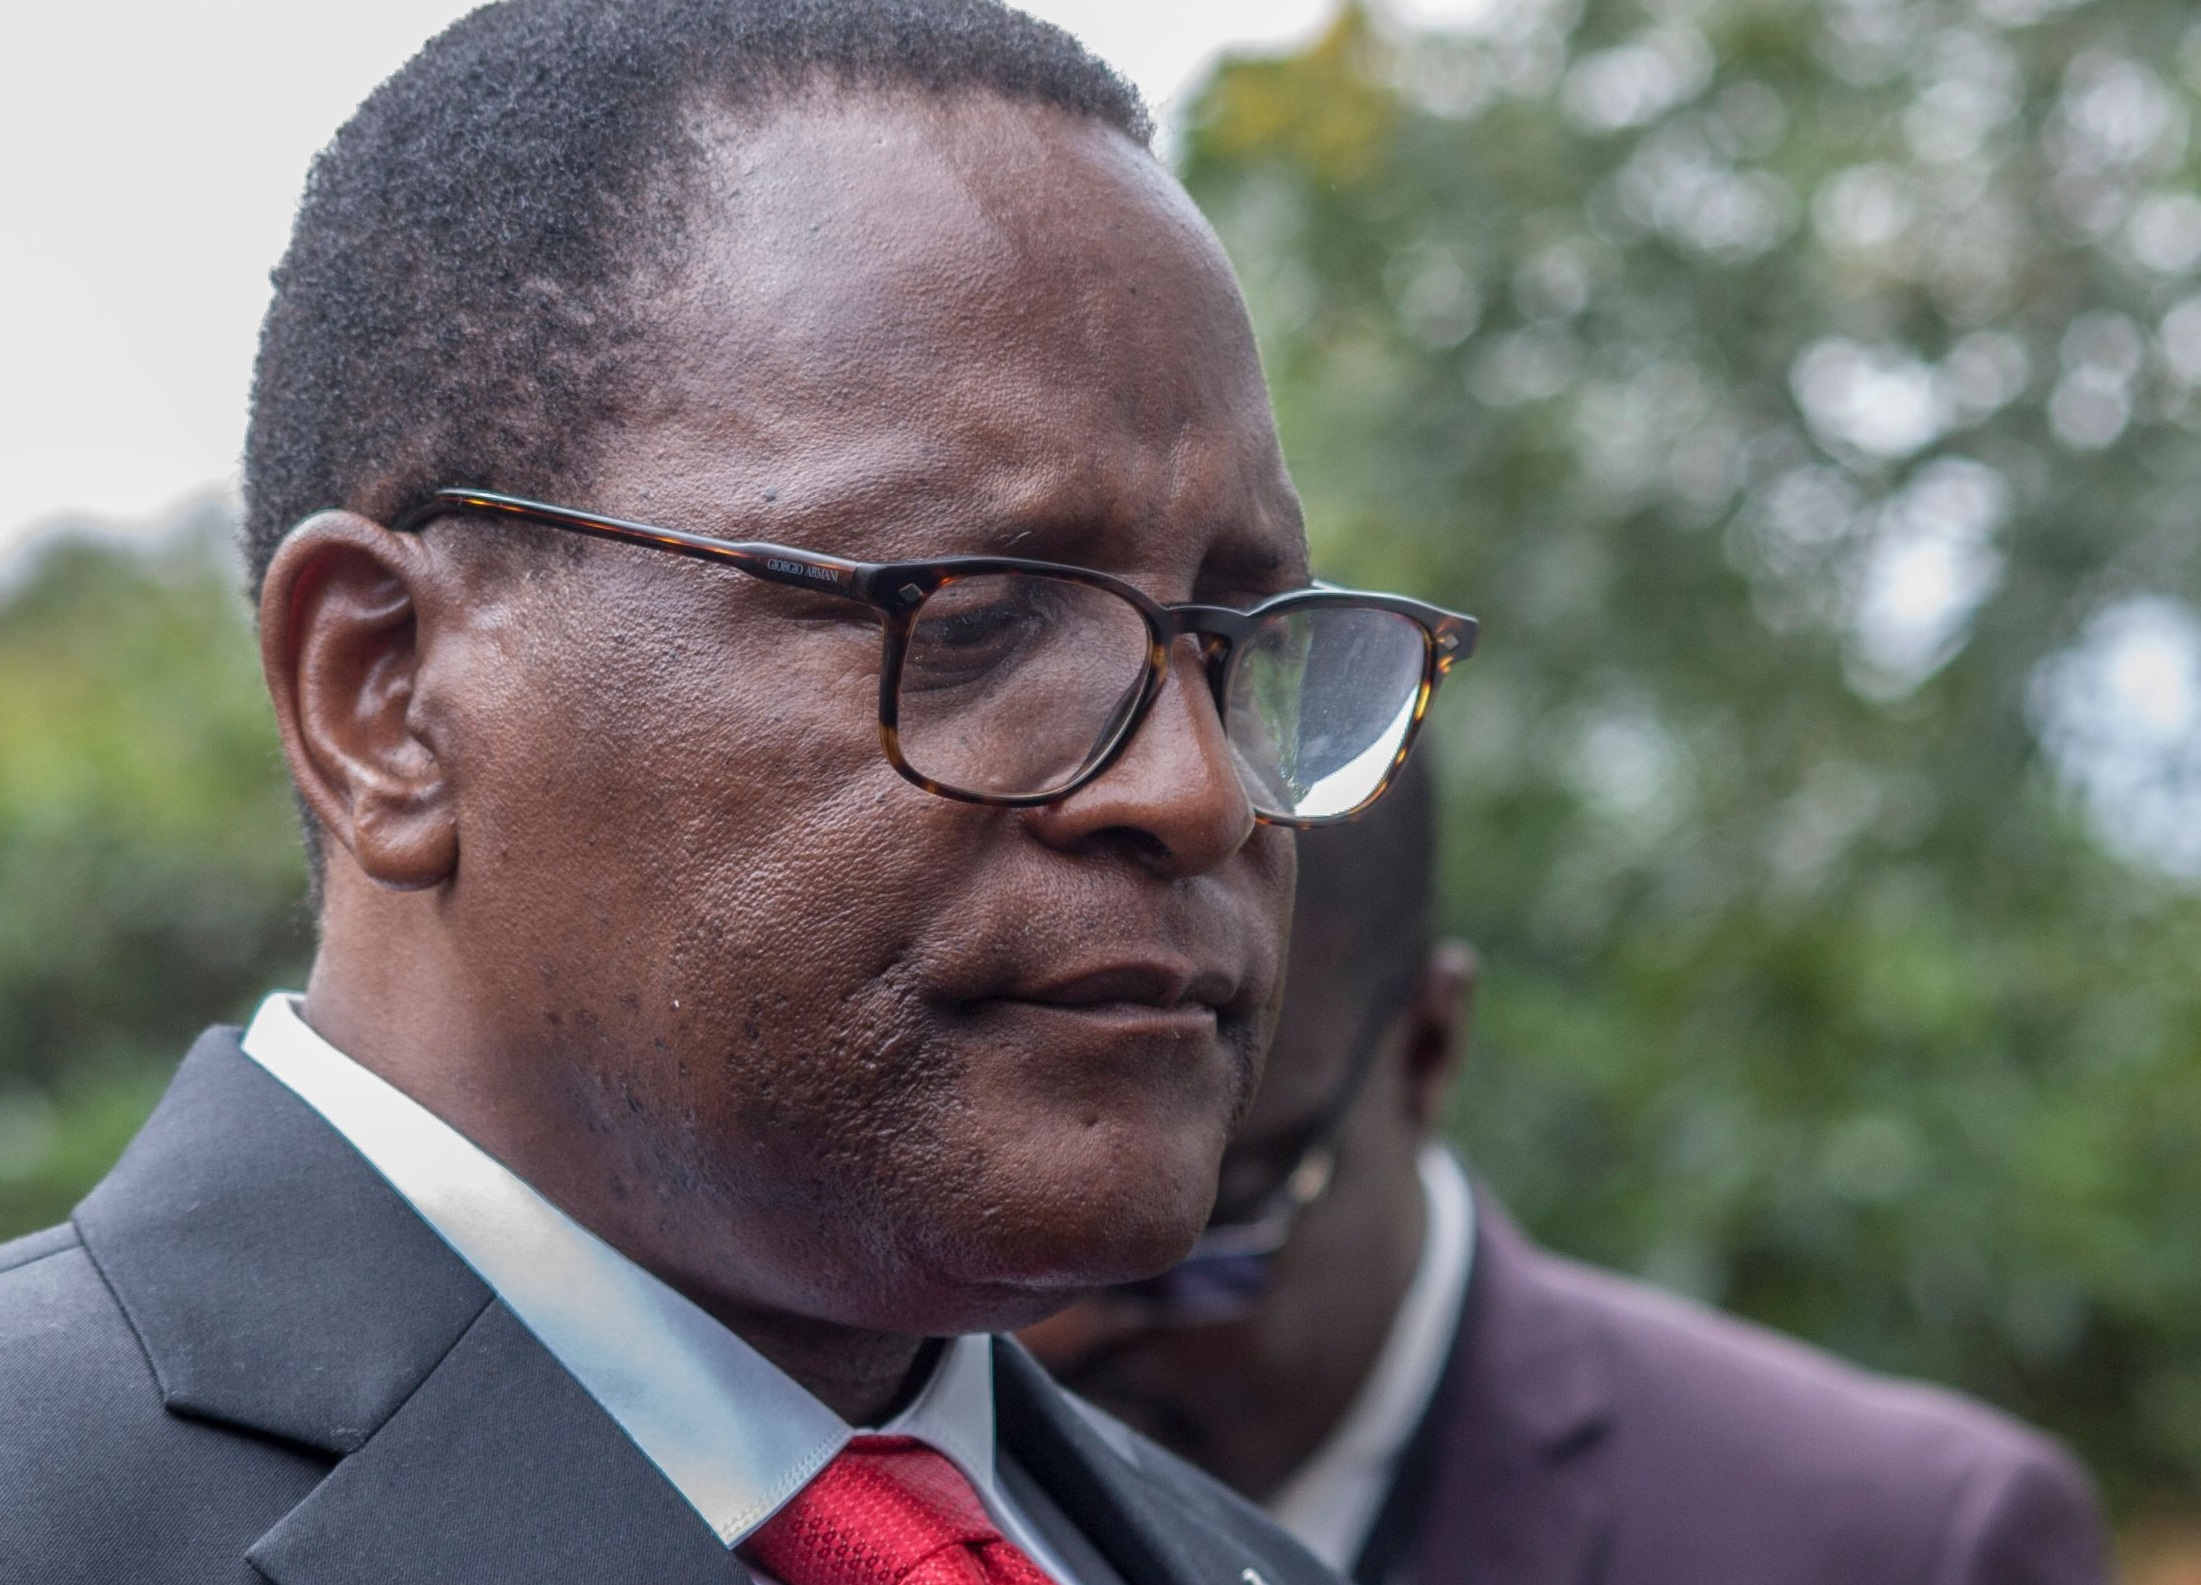 South Africa subjects Malawi president to rigorous checks at airport